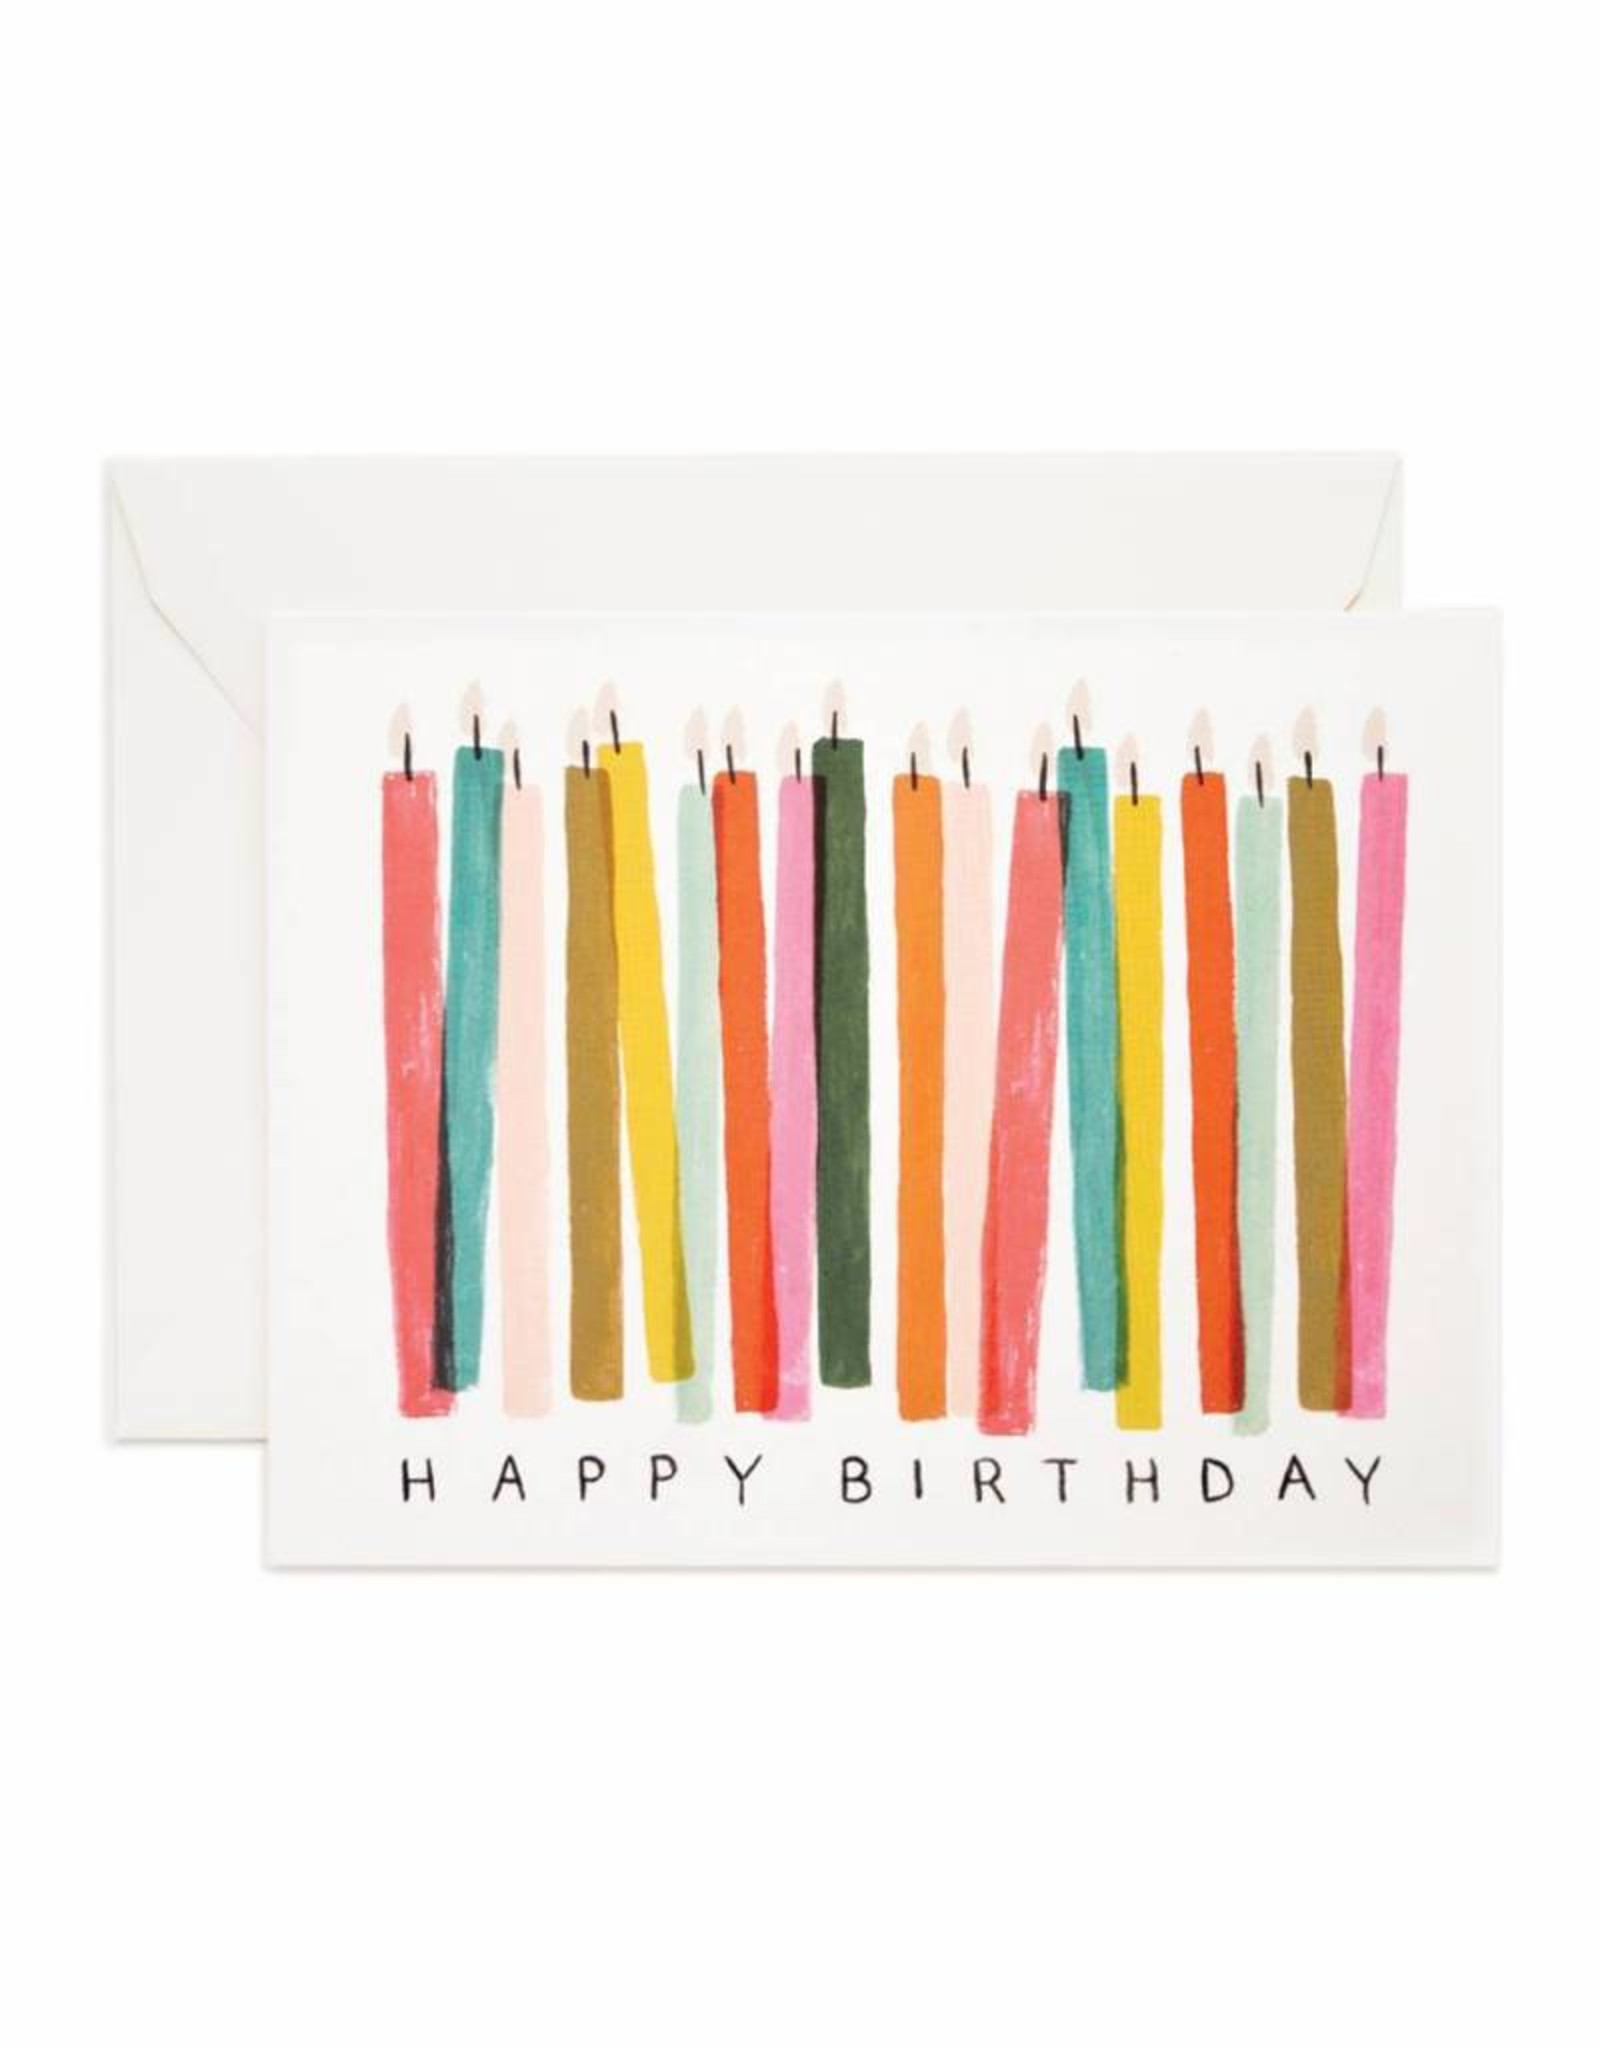 Rifle Paper Co. candles birthday card